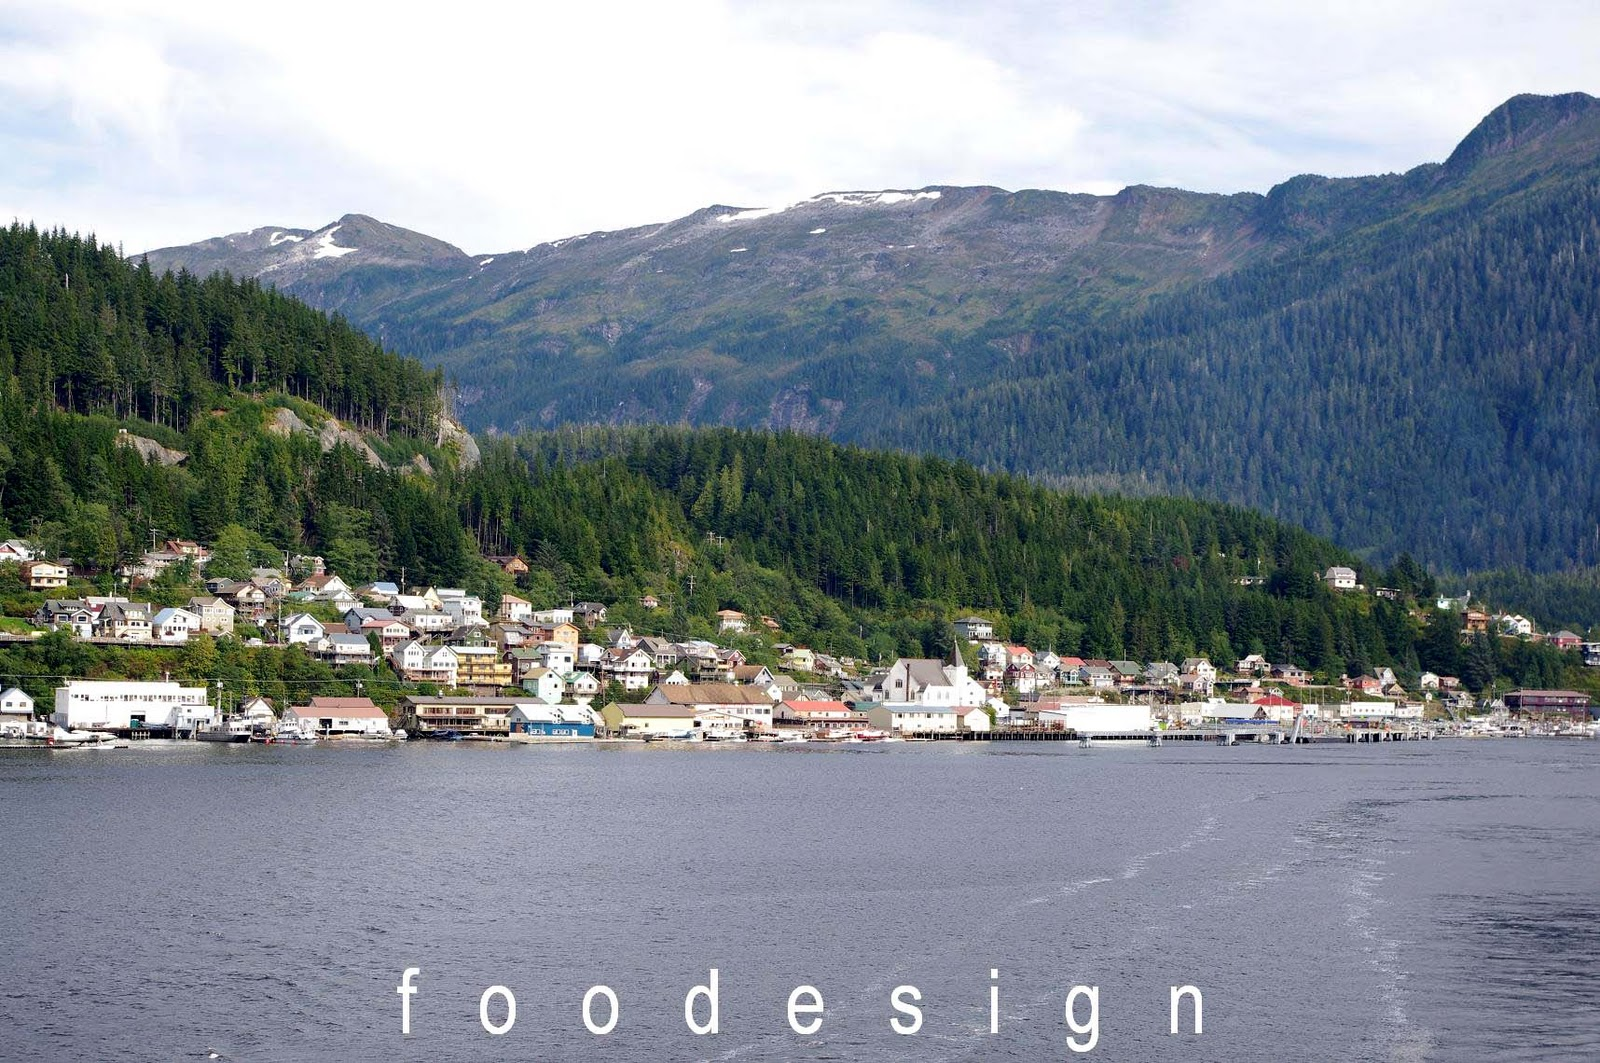 Foodesign Our First Port In Alaska Ketchikan